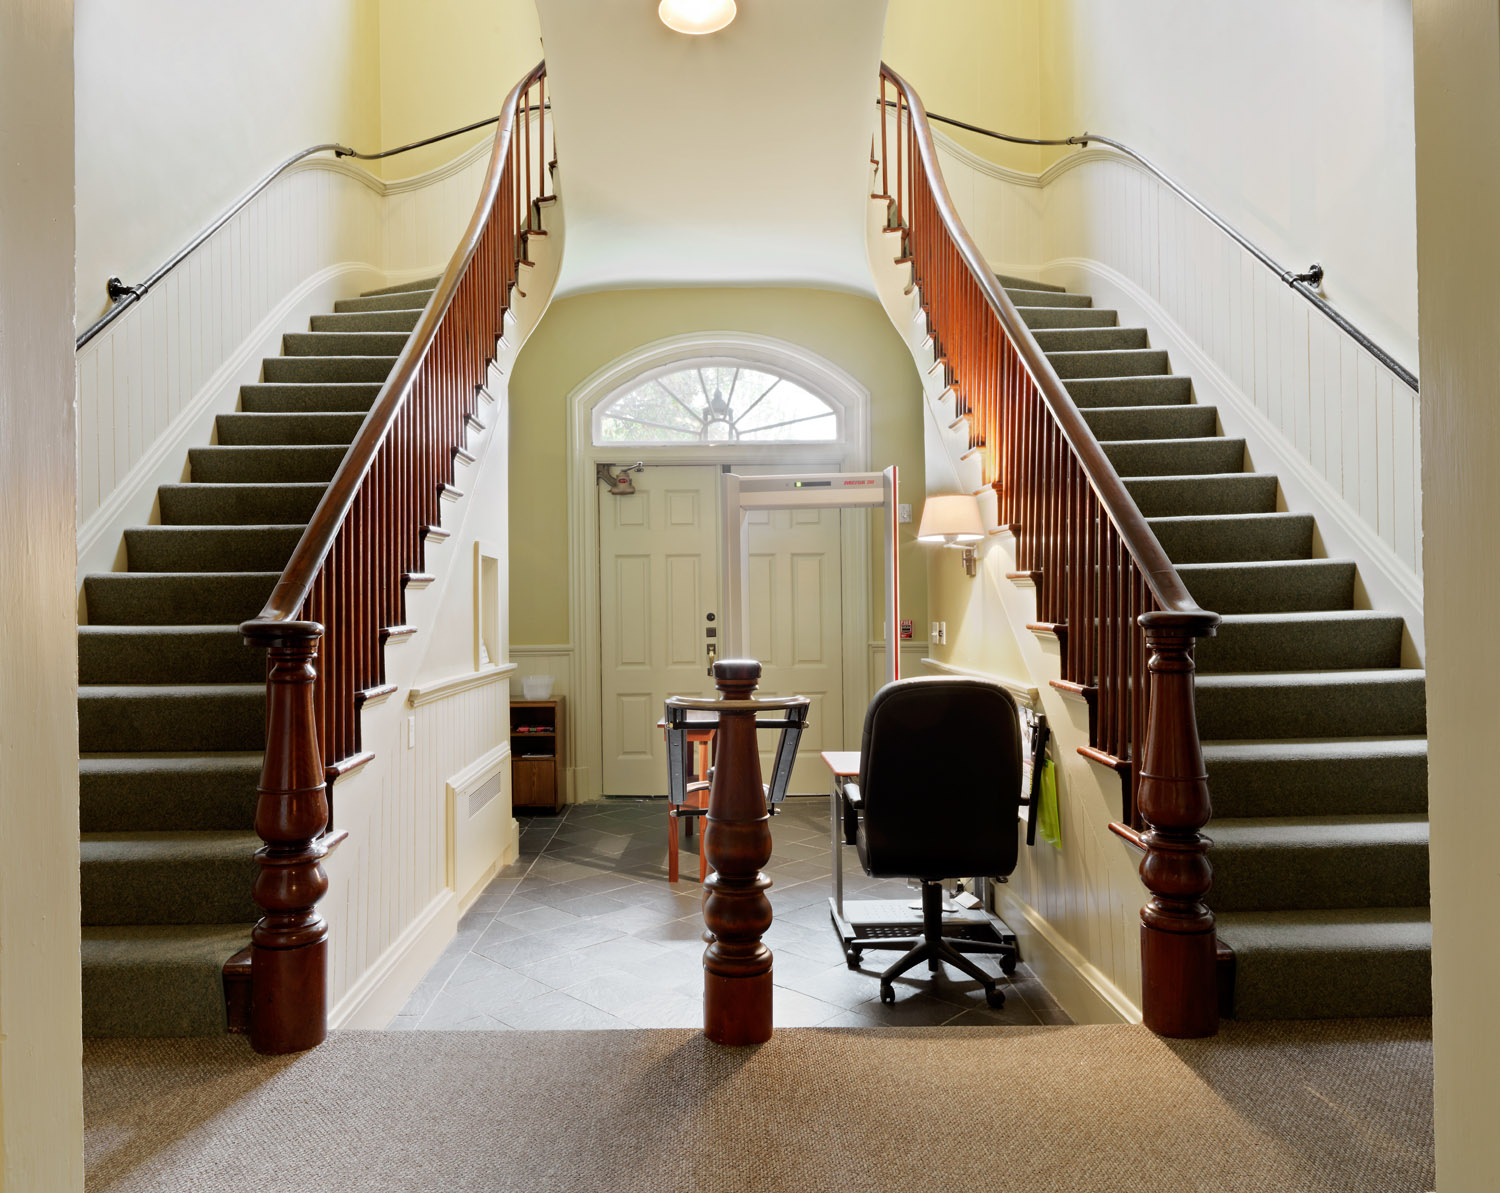 05 Windsor County Courthouse Stair.jpg